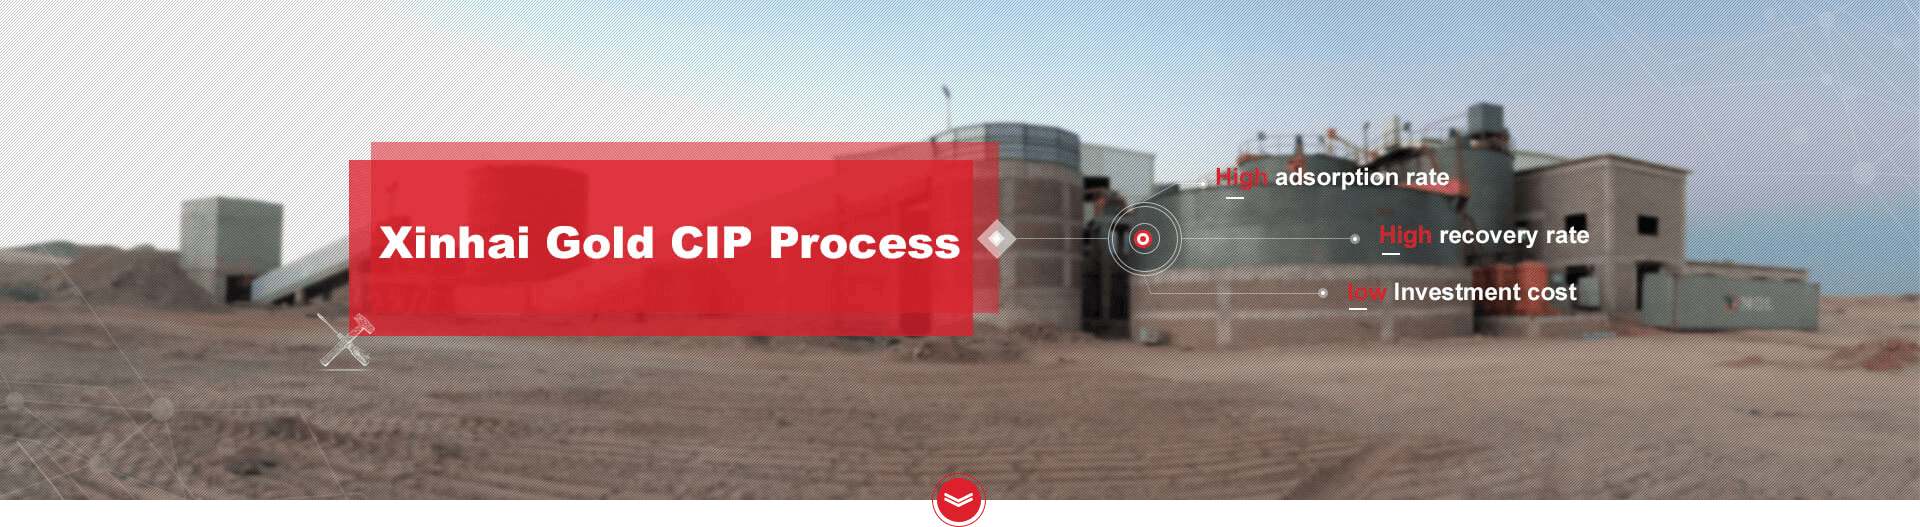 Xinhai Gold CIP Process